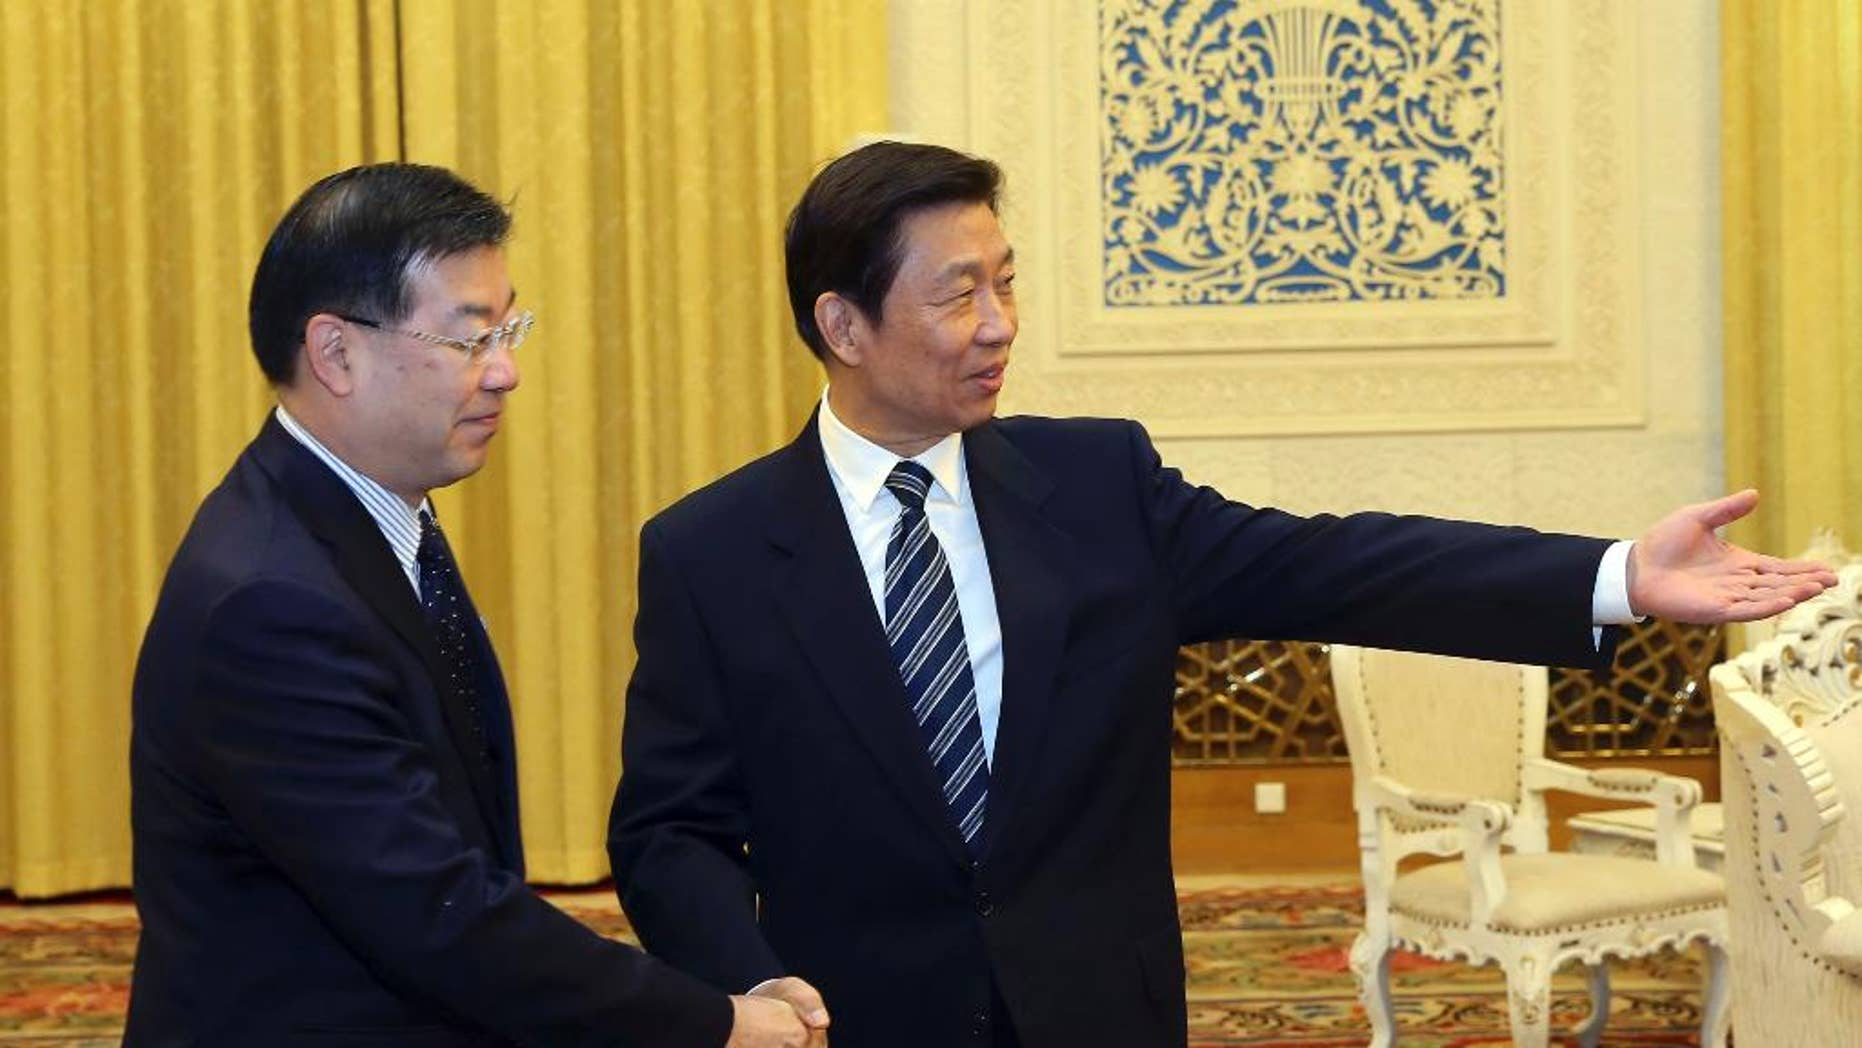 In this photo provided by China's Xinhua News Agency, Chinese Vice President Li Yuanchao, right,  meets with President of Japan's National Governors' Association, Keiji Yamada, in Beijing, capital of China, Tuesday, Oct. 28, 2014. China's vice president met Tuesday with a delegation of governors from Japan amid strained bilateral ties, a rare high-level meeting that points to Japan's hopes of a summit between the two countries' leaders at a regional conference next month. (AP Photo/Xinhua, Liu Weibing) NO SALES